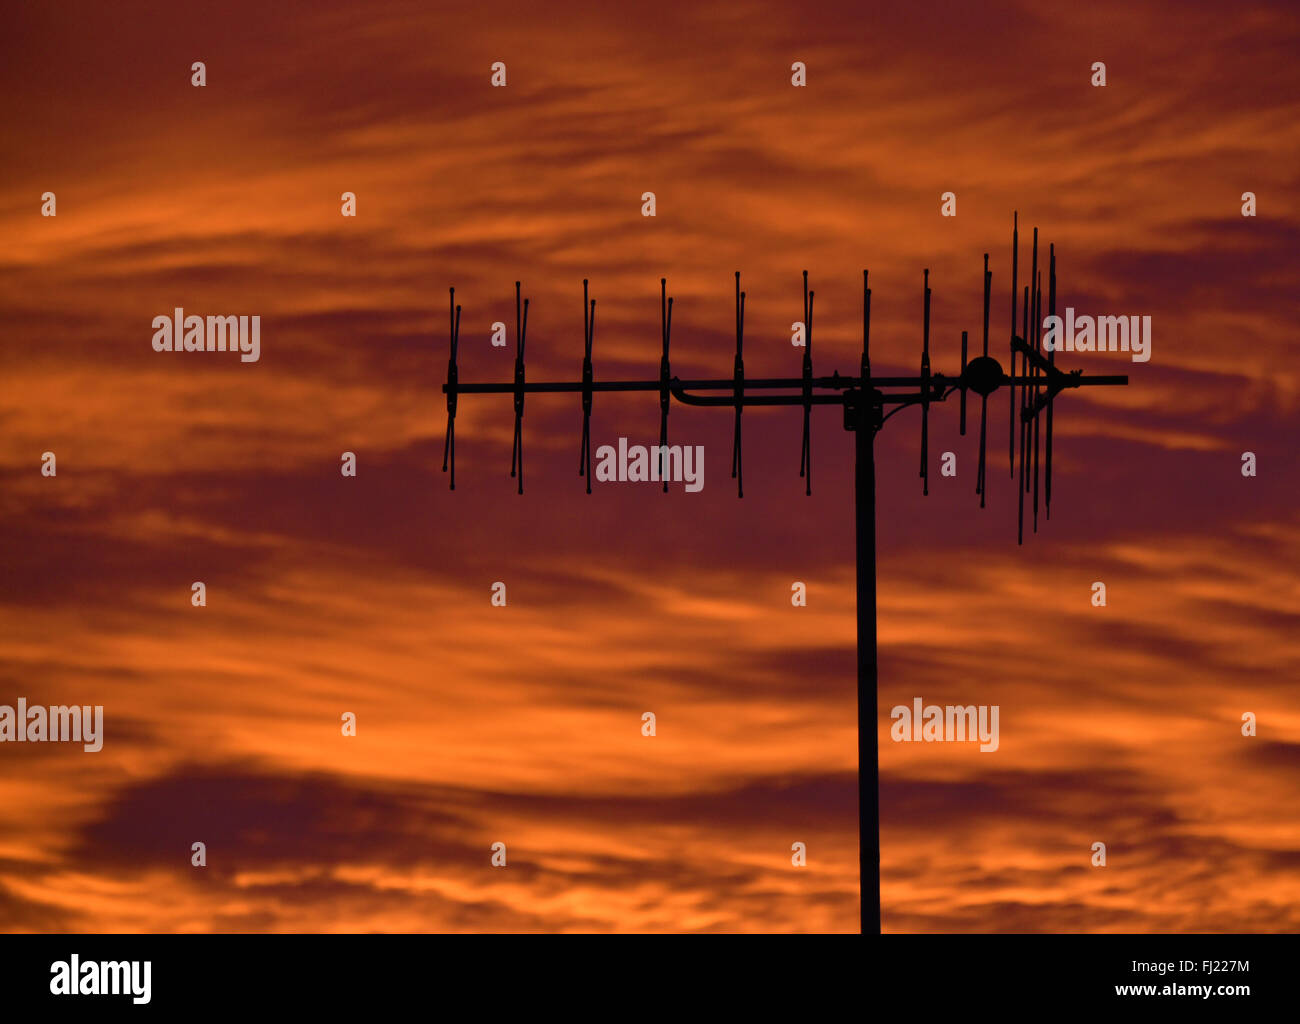 Television aerial with sunset sky. - Stock Image